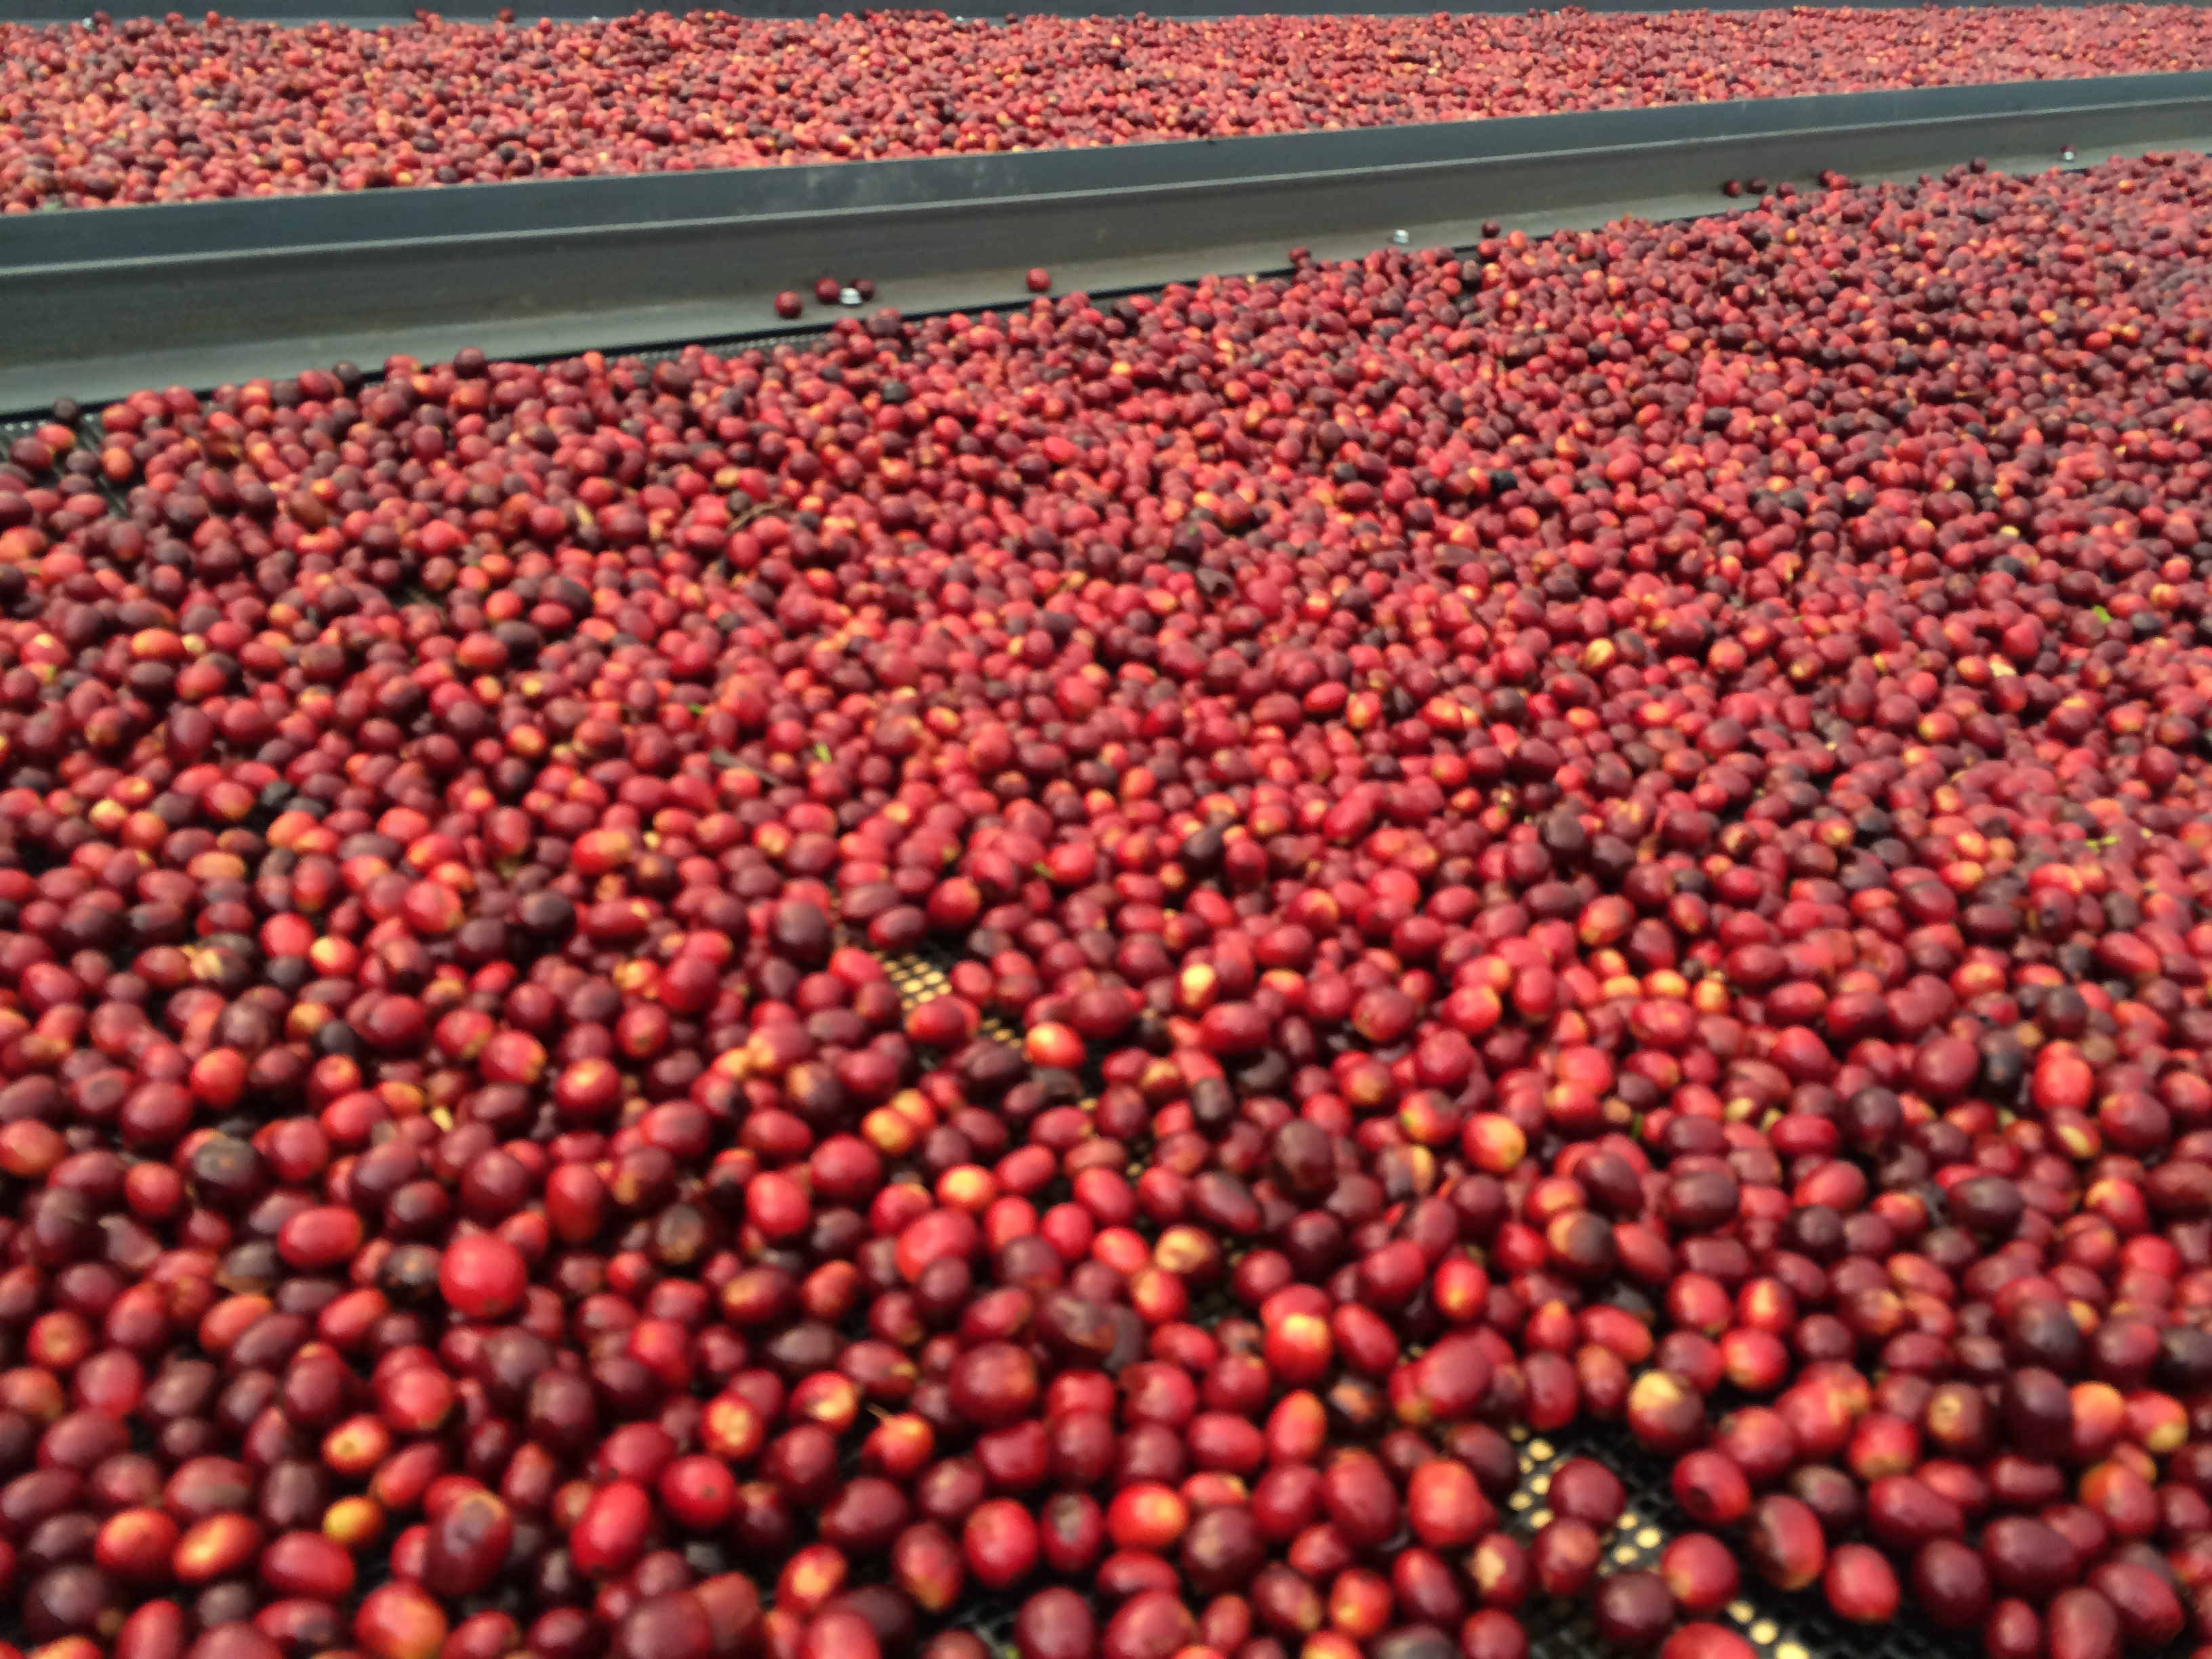 Fresh Geisha coffee berries drying at Finca Deborah in Panama.